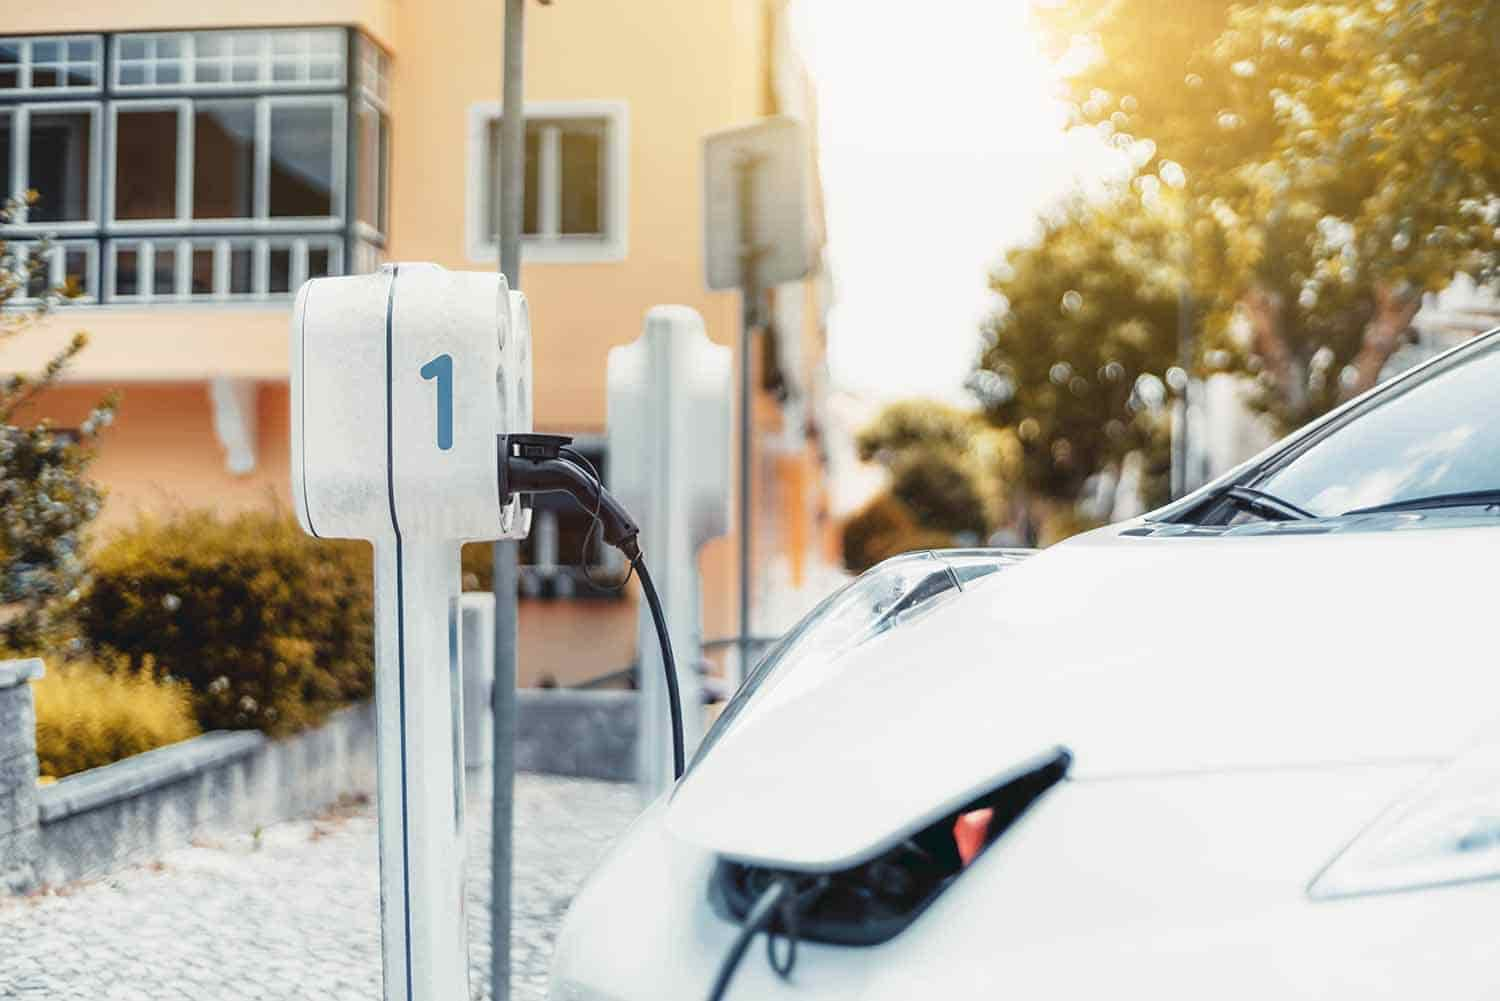 Costs of using Car Charging Stations